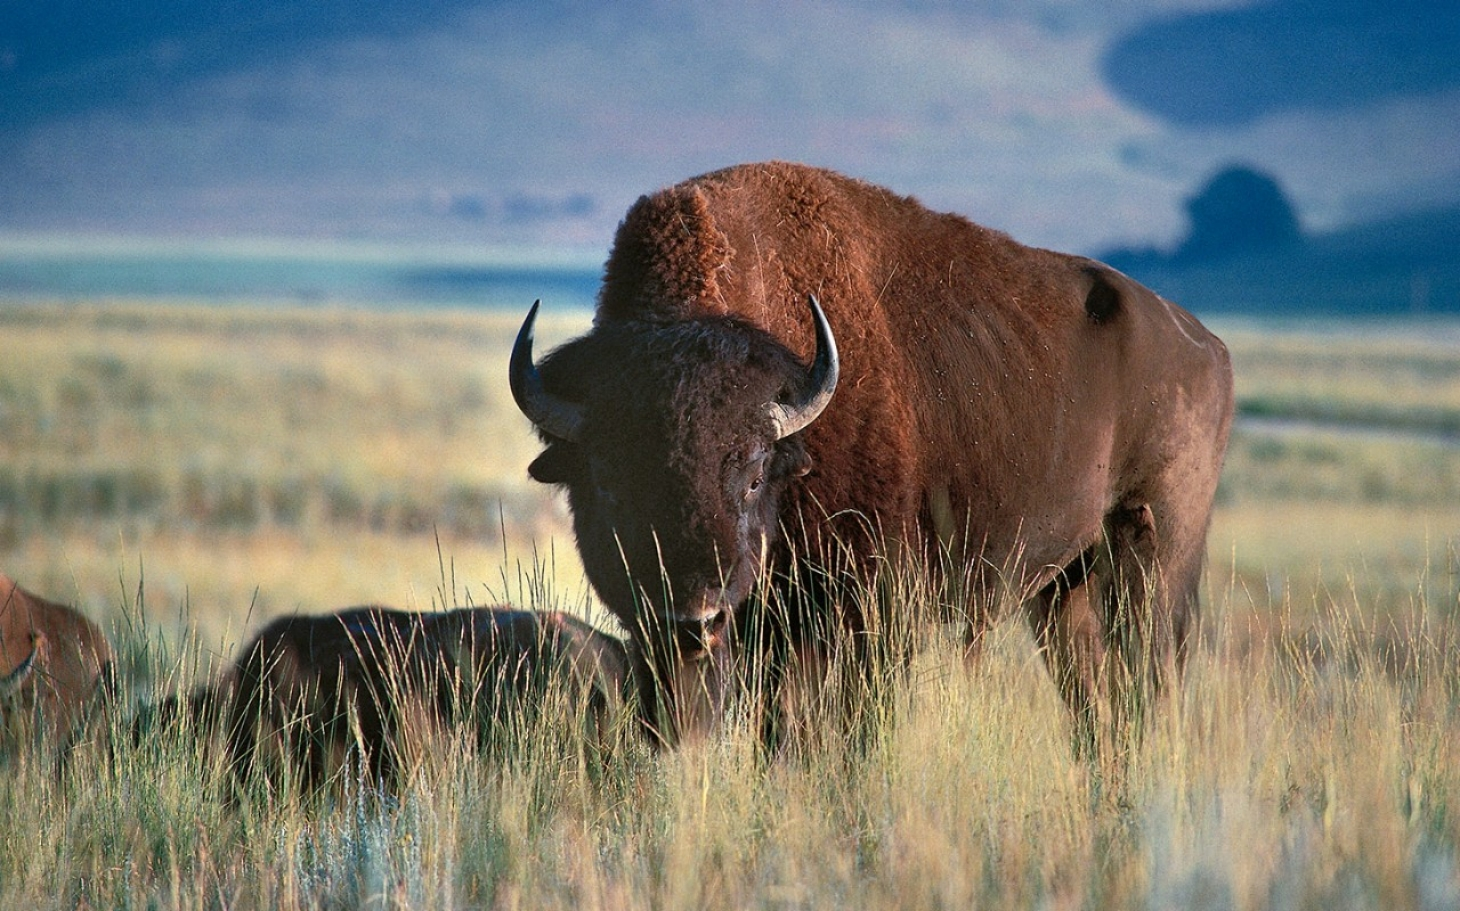 us canadian tribes sign historic bison treaty al jazeera america